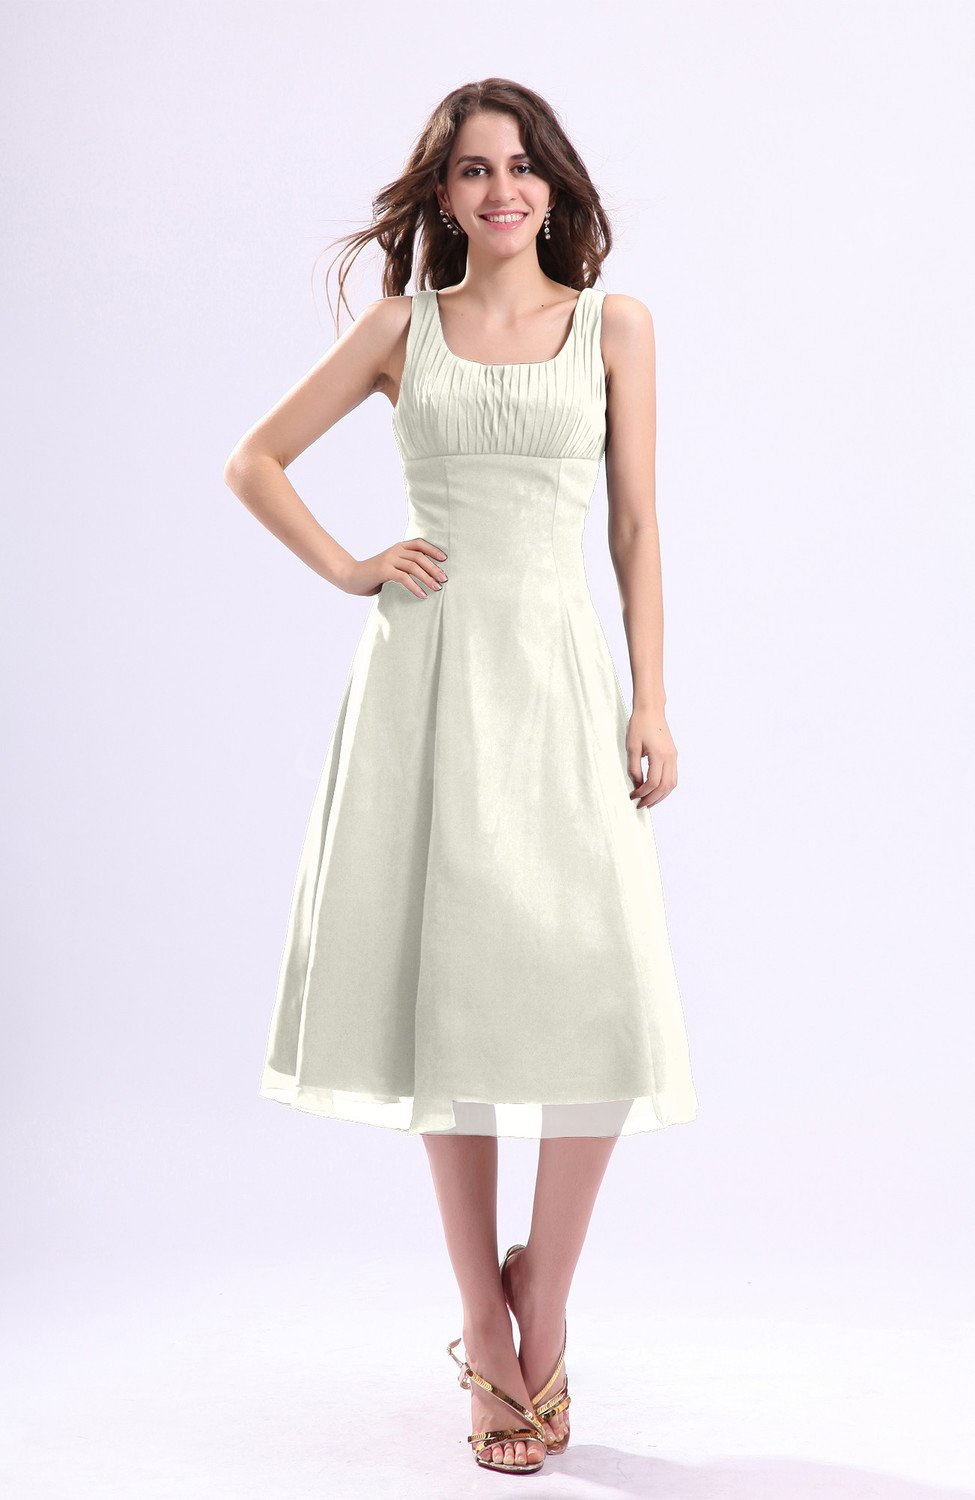 98ac71c2902a4 Ivory Simple A-line Square Sleeveless Zip up Wedding Guest Dresses ...